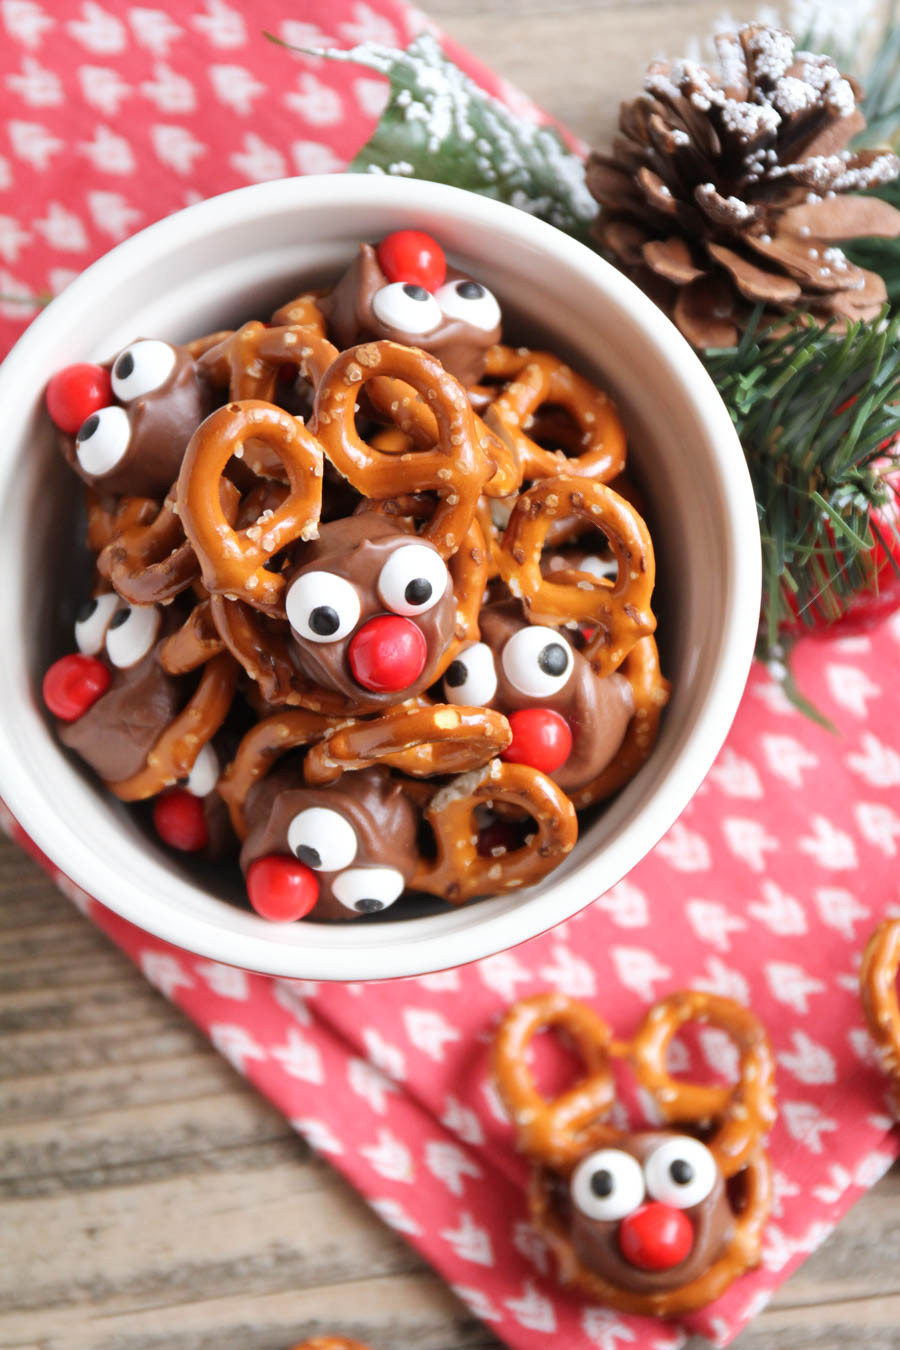 Christmas Pretzels Recipes  25 Fun Christmas Treat Ideas – Fun Squared